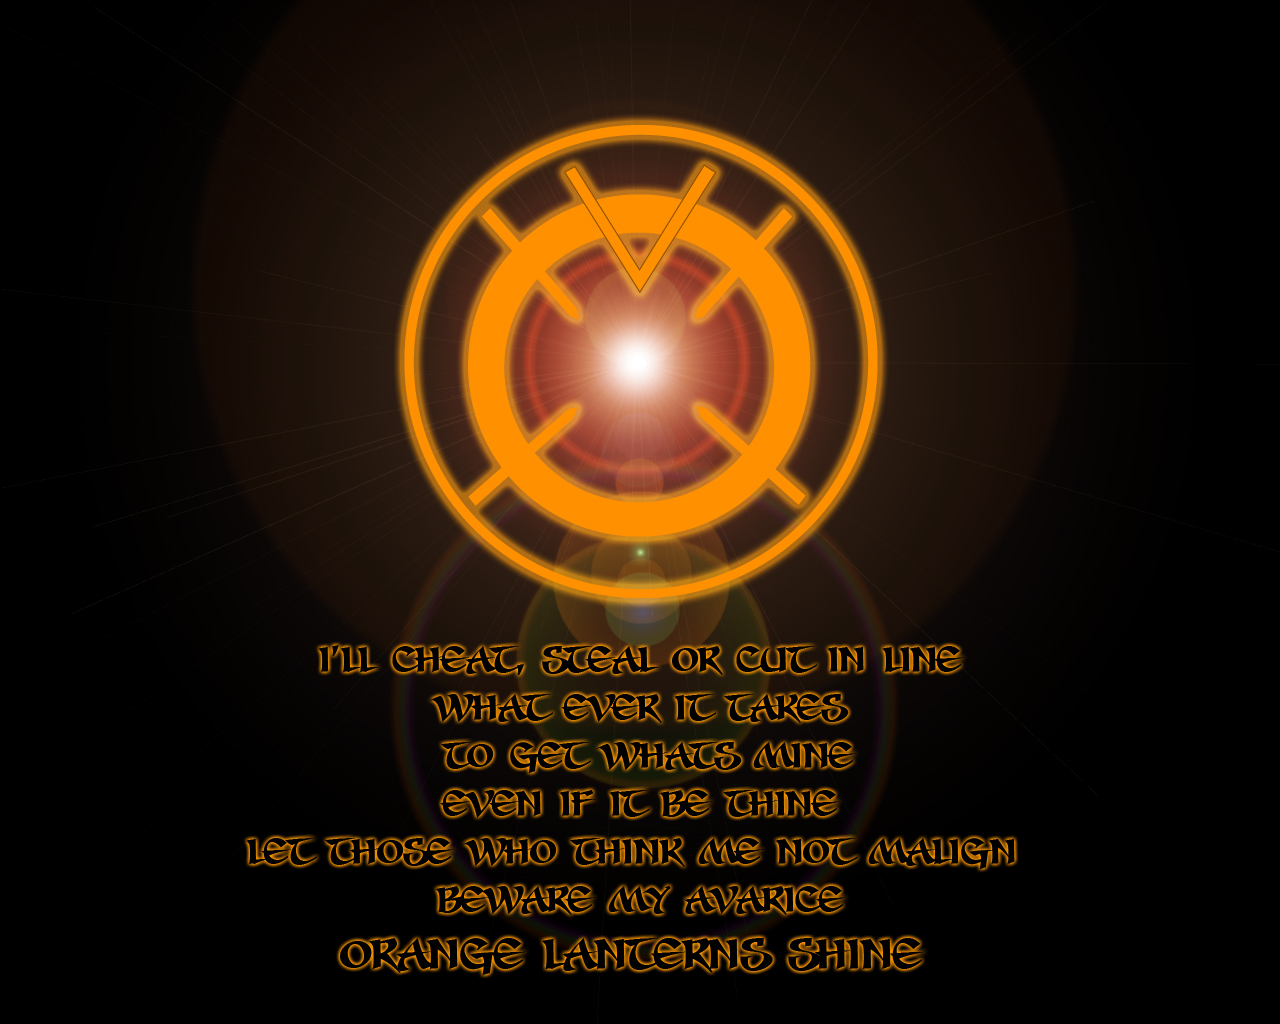 download Orange Lantern Corps Wallpaper 7 1280 X 1024 1280x1024